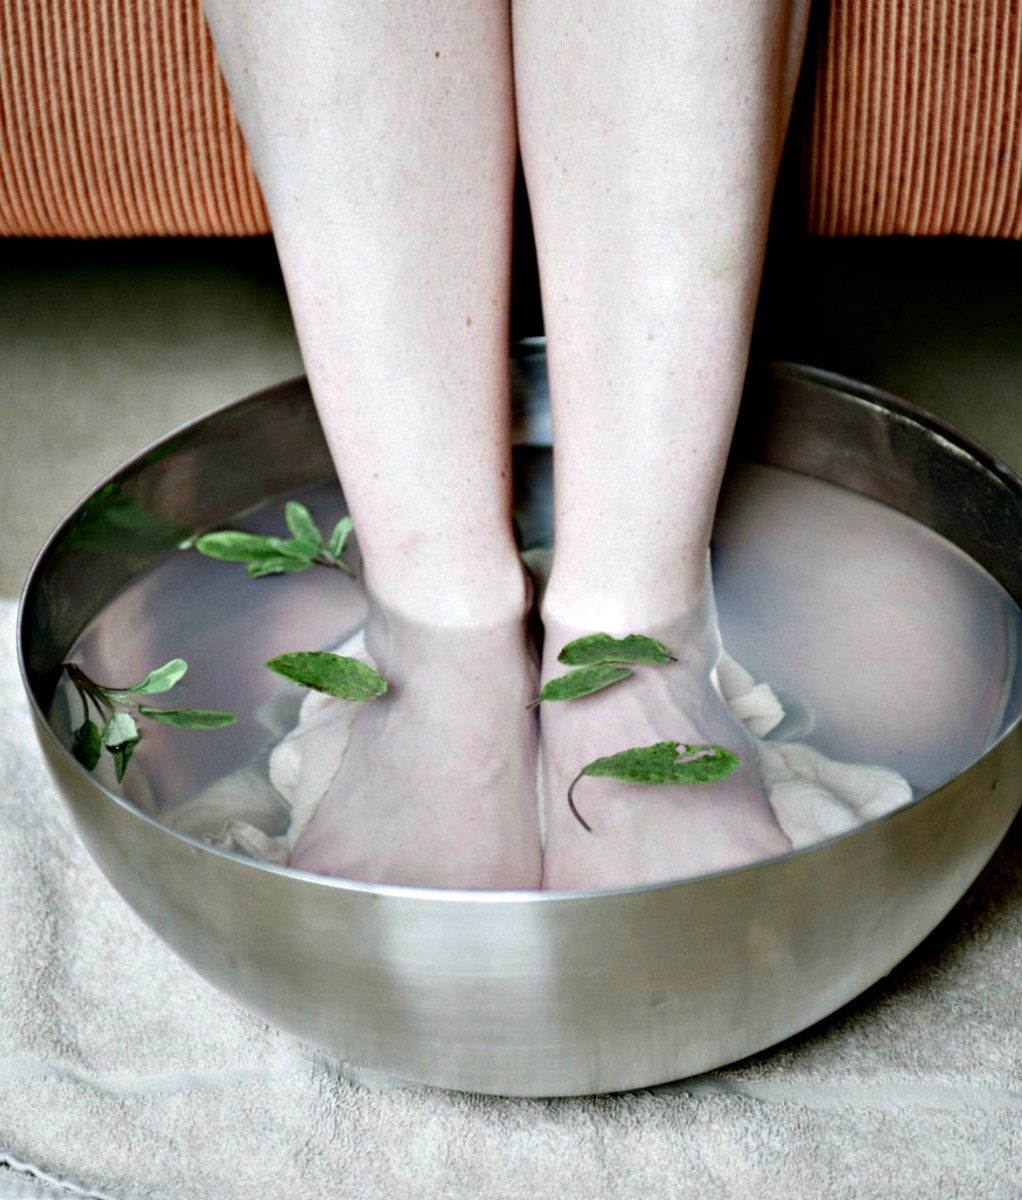 Soaking and washing feet regularly keeps them healthy and infection free.